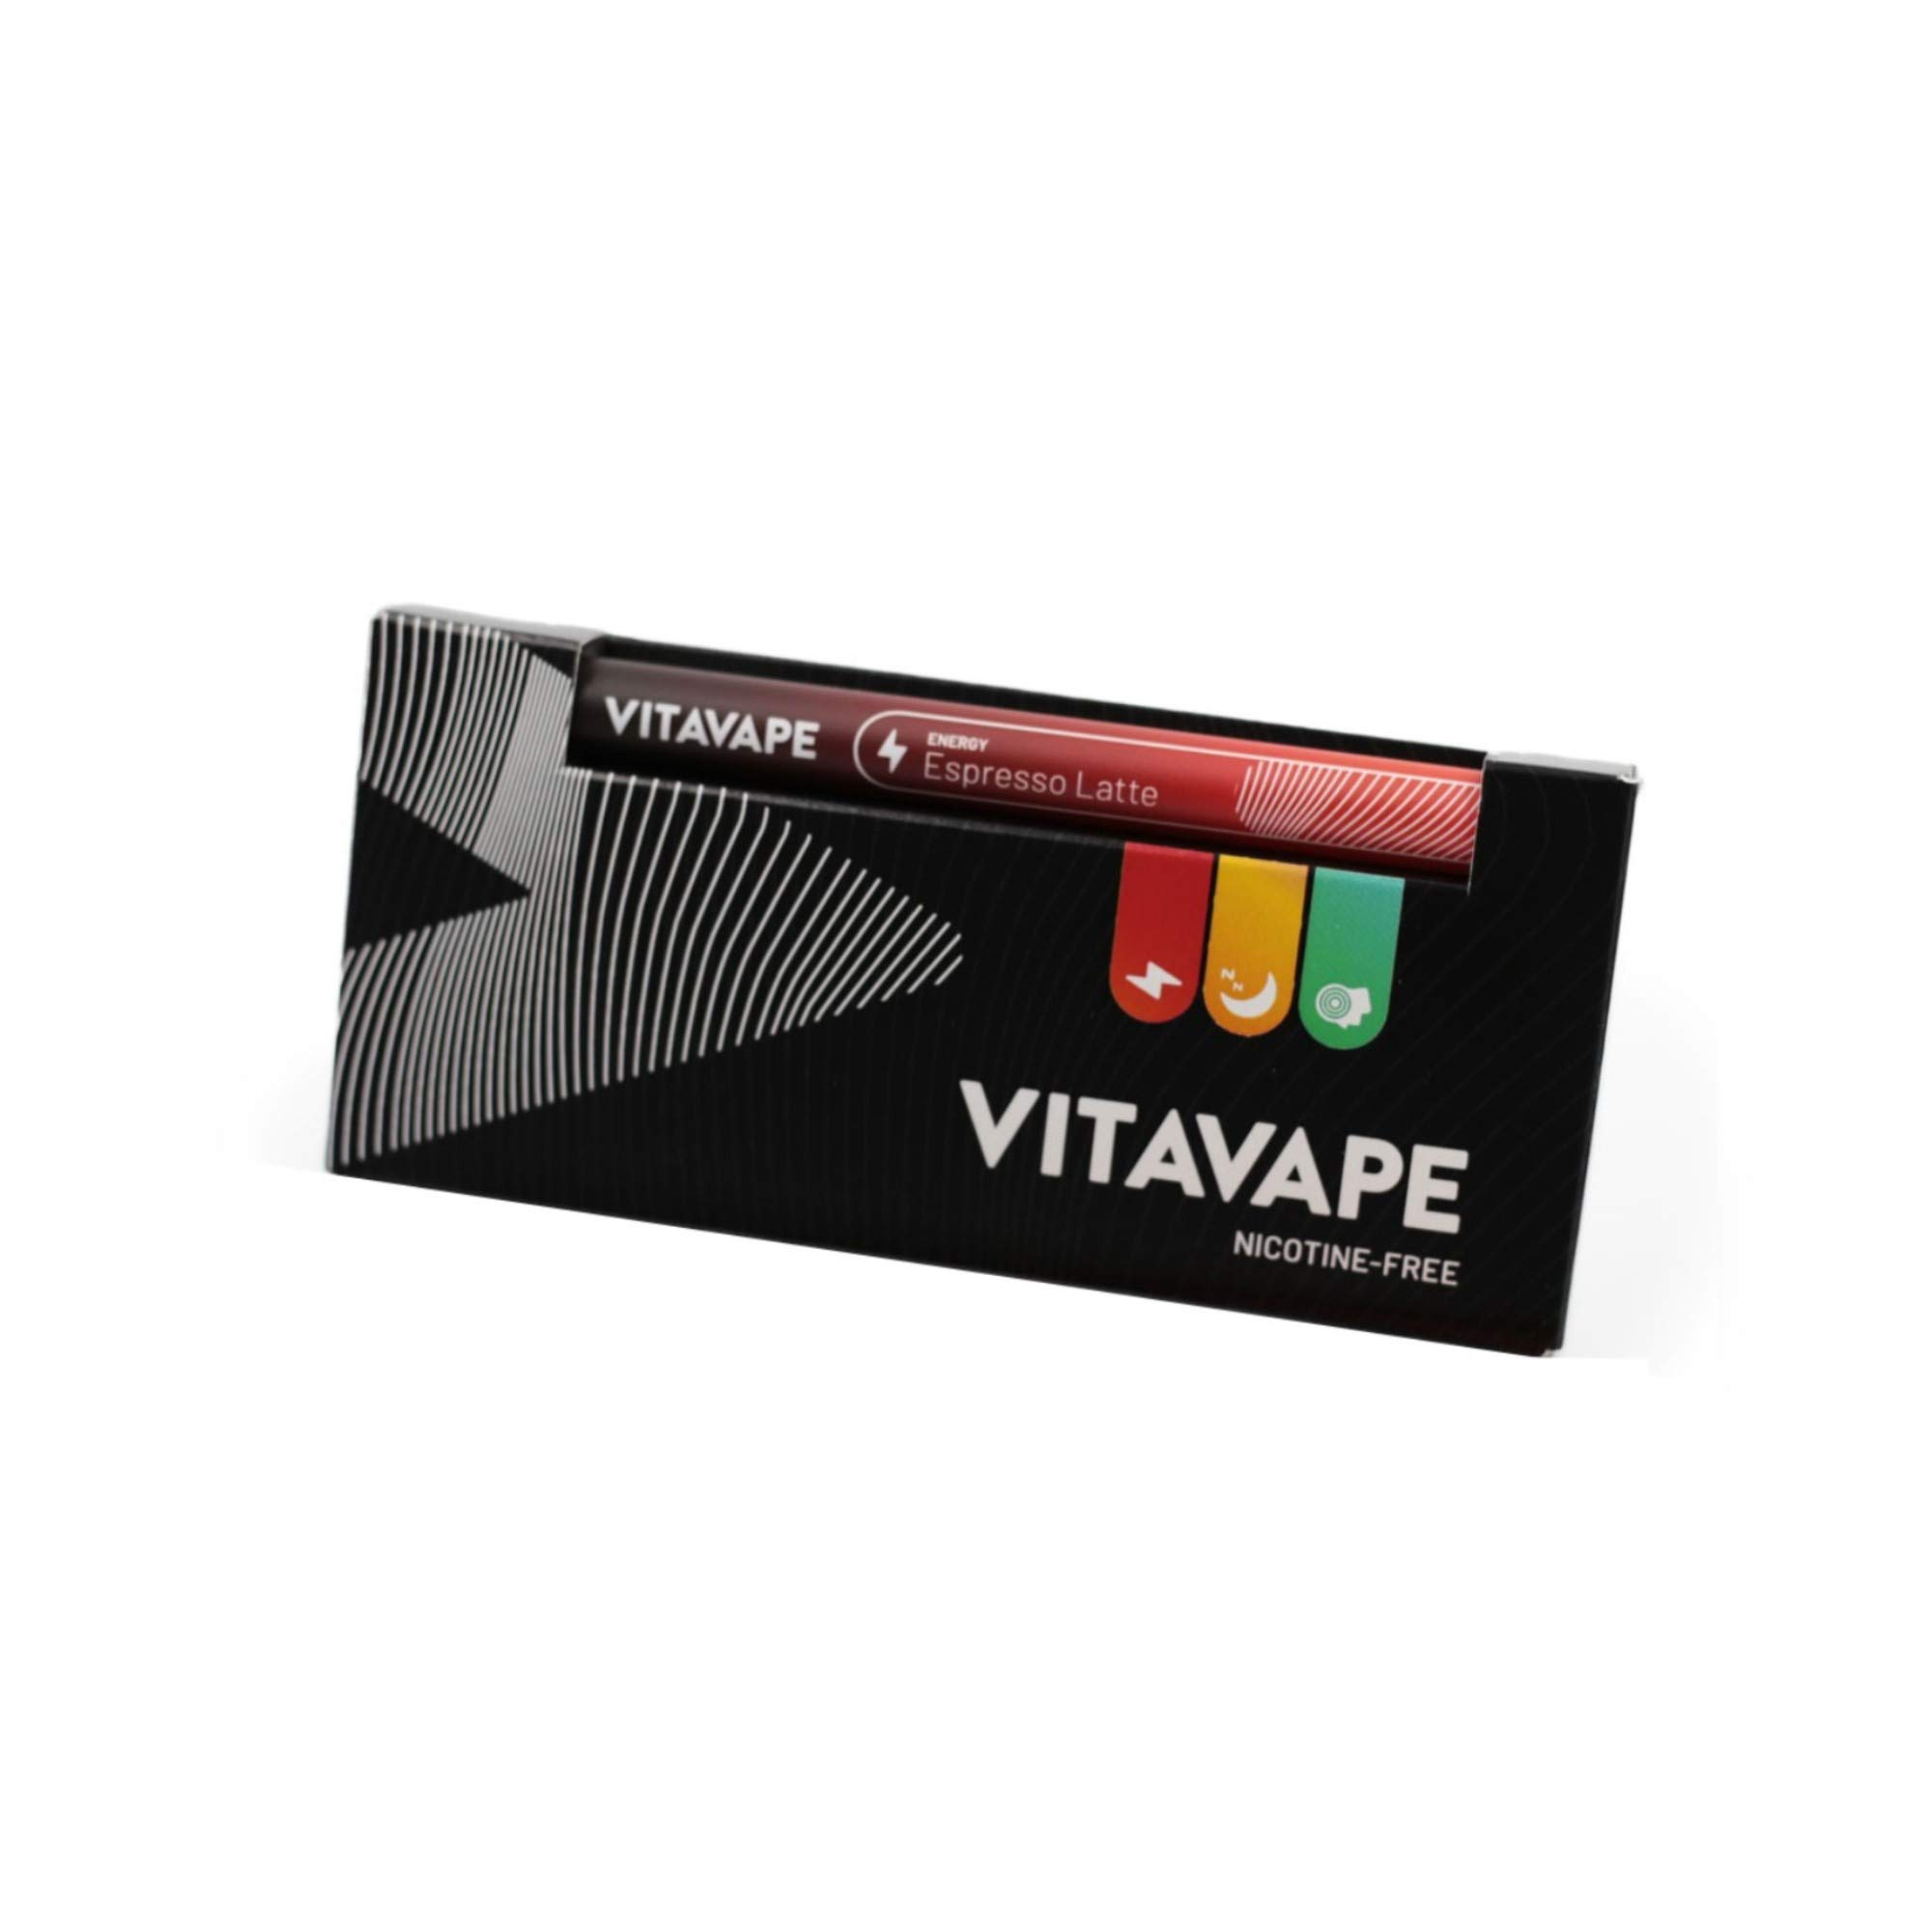 VITAVAPE: Energy - all Natural B12 Pen | Hookah Pen With Espresso Latte Flavors | all Natural Essential Oil Vitamin Pen | Designed To Deliver Caffeine Fast by